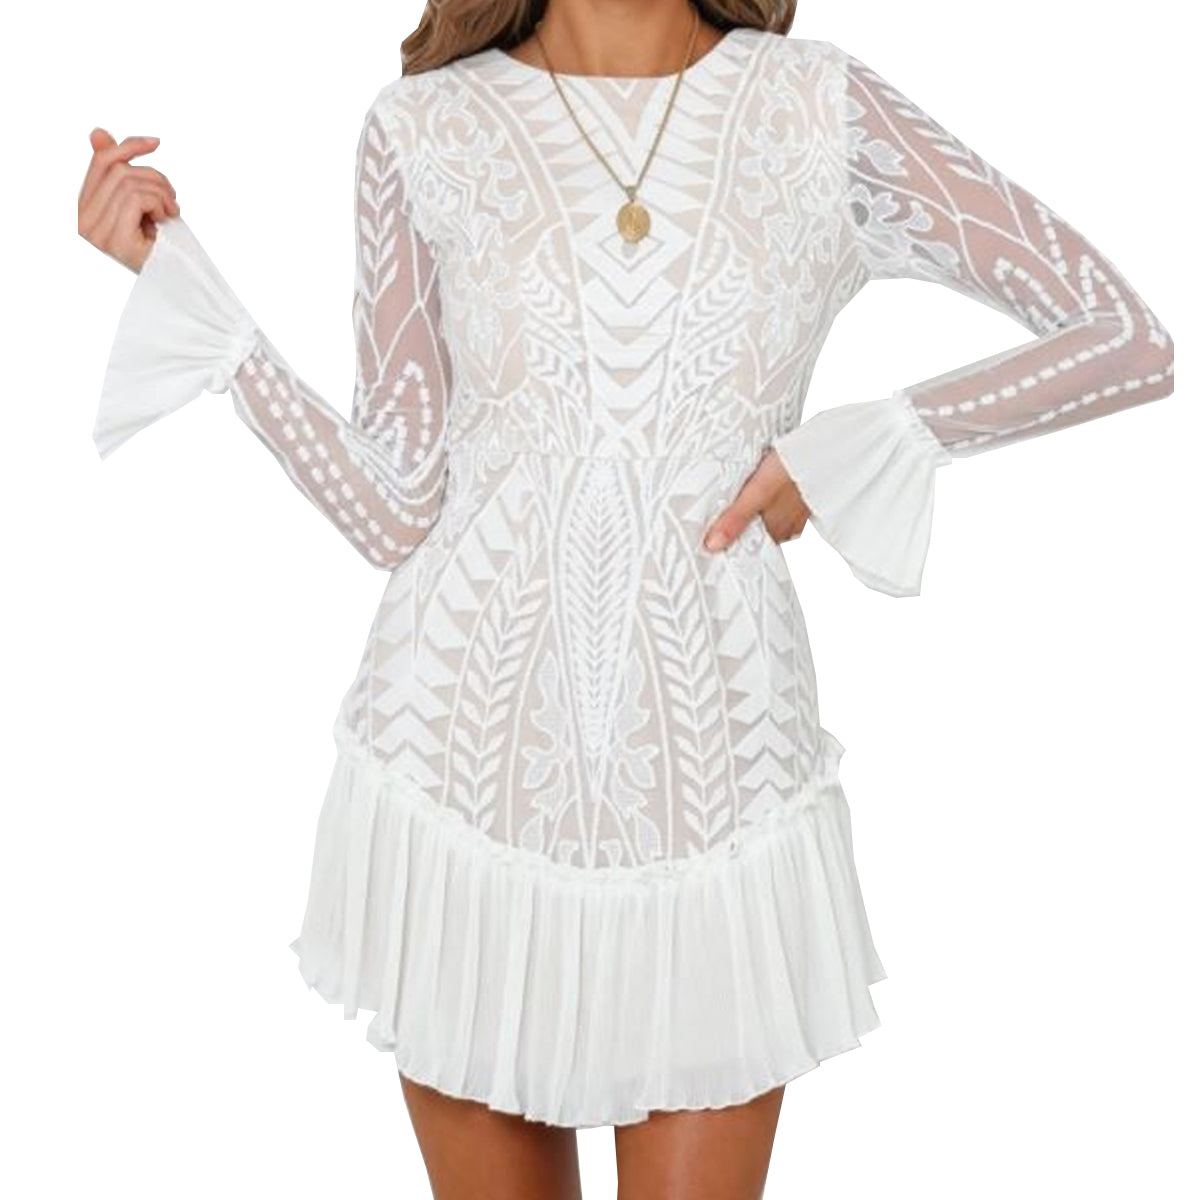 One and Only Collective Women's Lace Long Sleeve Mini Dress - White